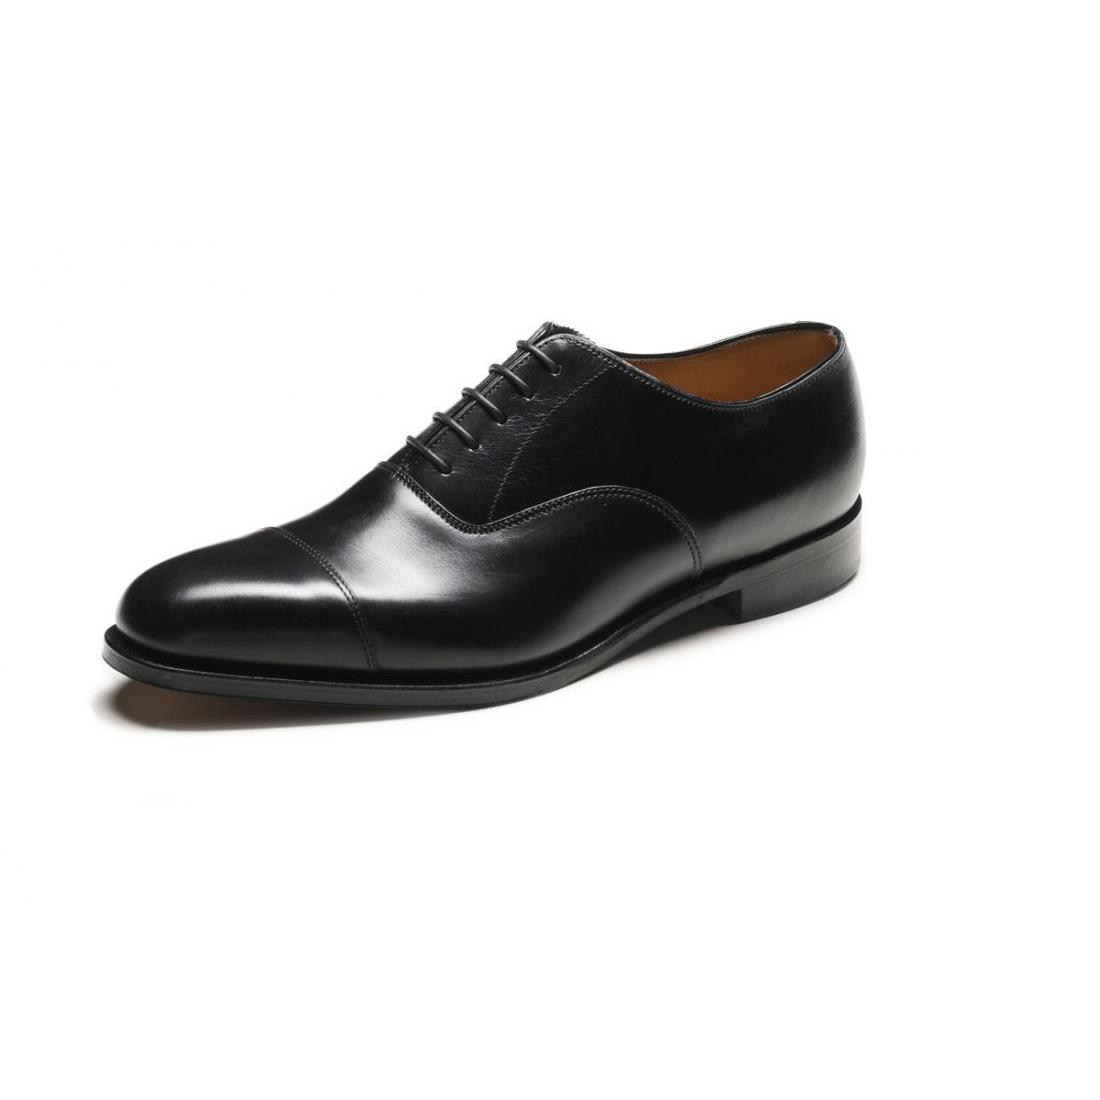 These black leather oxford shoes have a sleek pointed toe and stacked sole. By Shellys London.